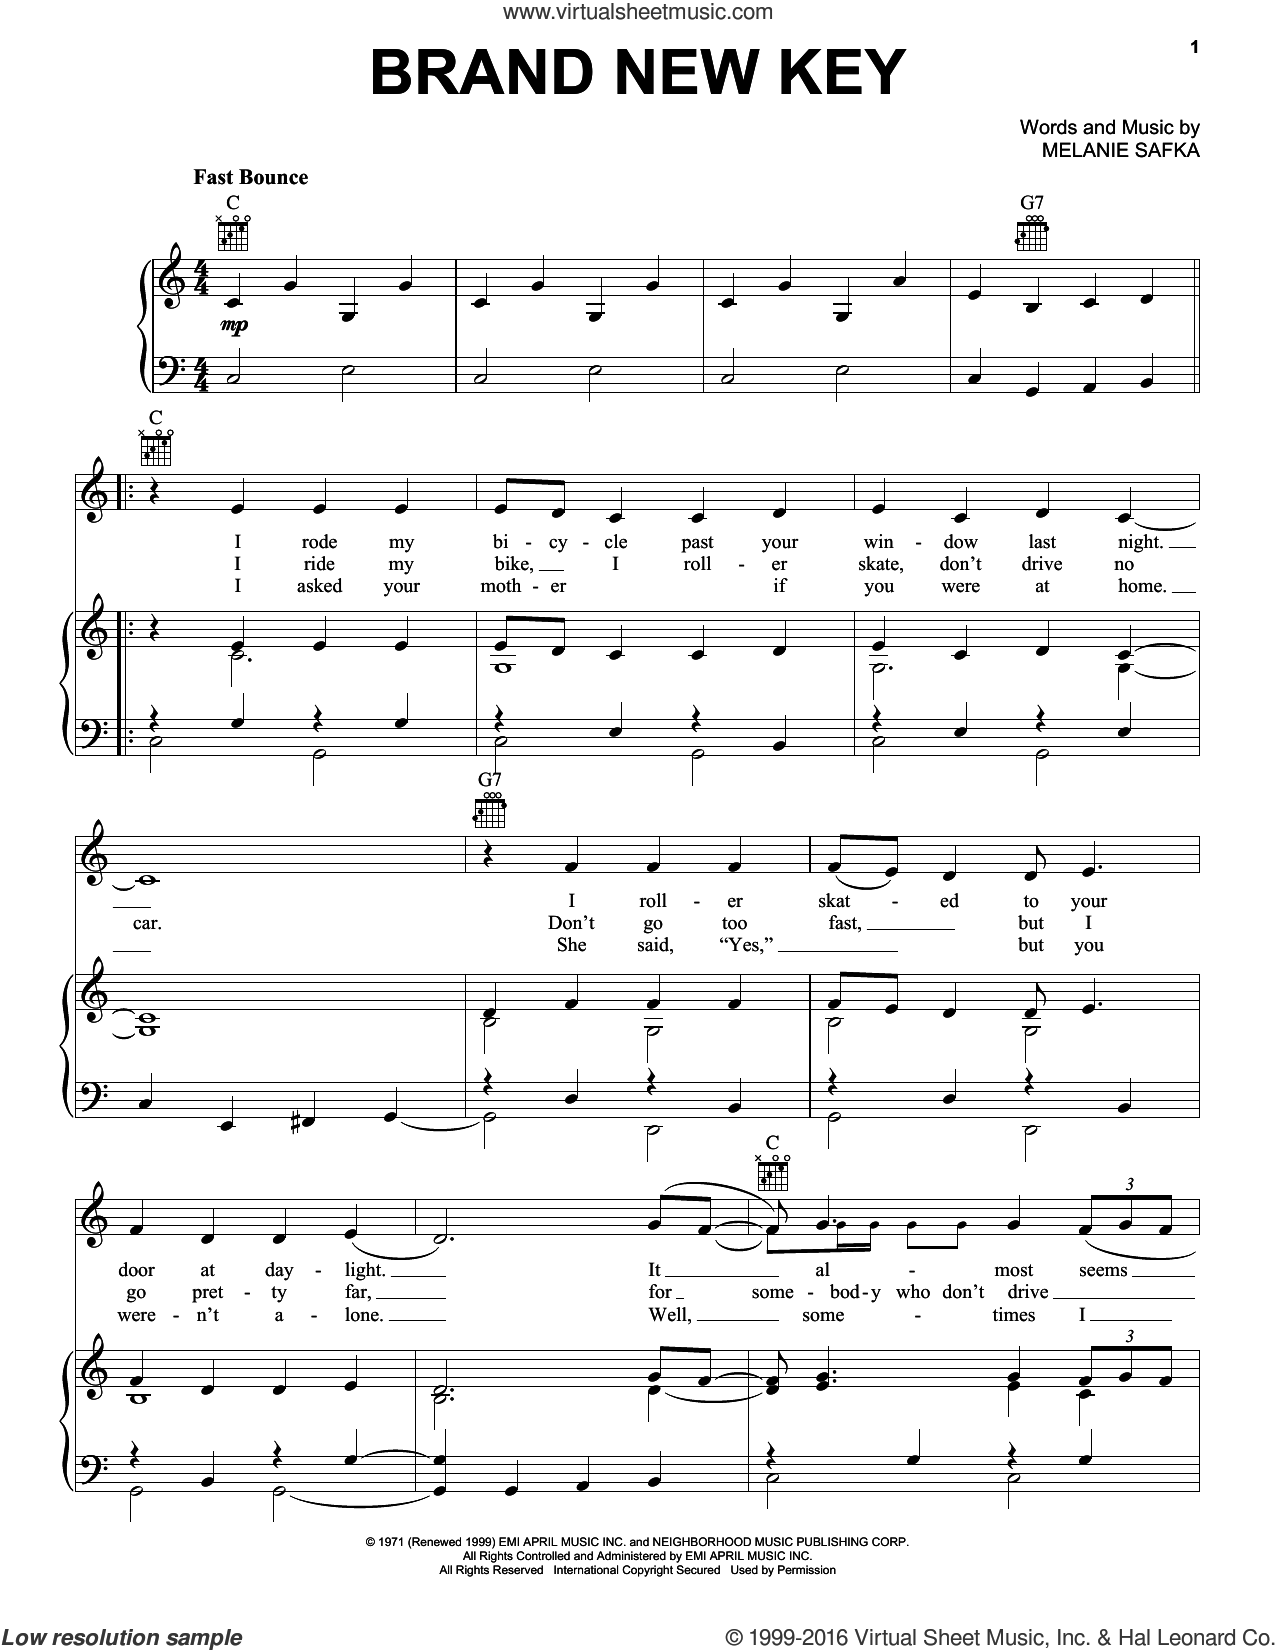 Brand New Key sheet music for voice, piano or guitar by Melanie and Melanie Safka. Score Image Preview.